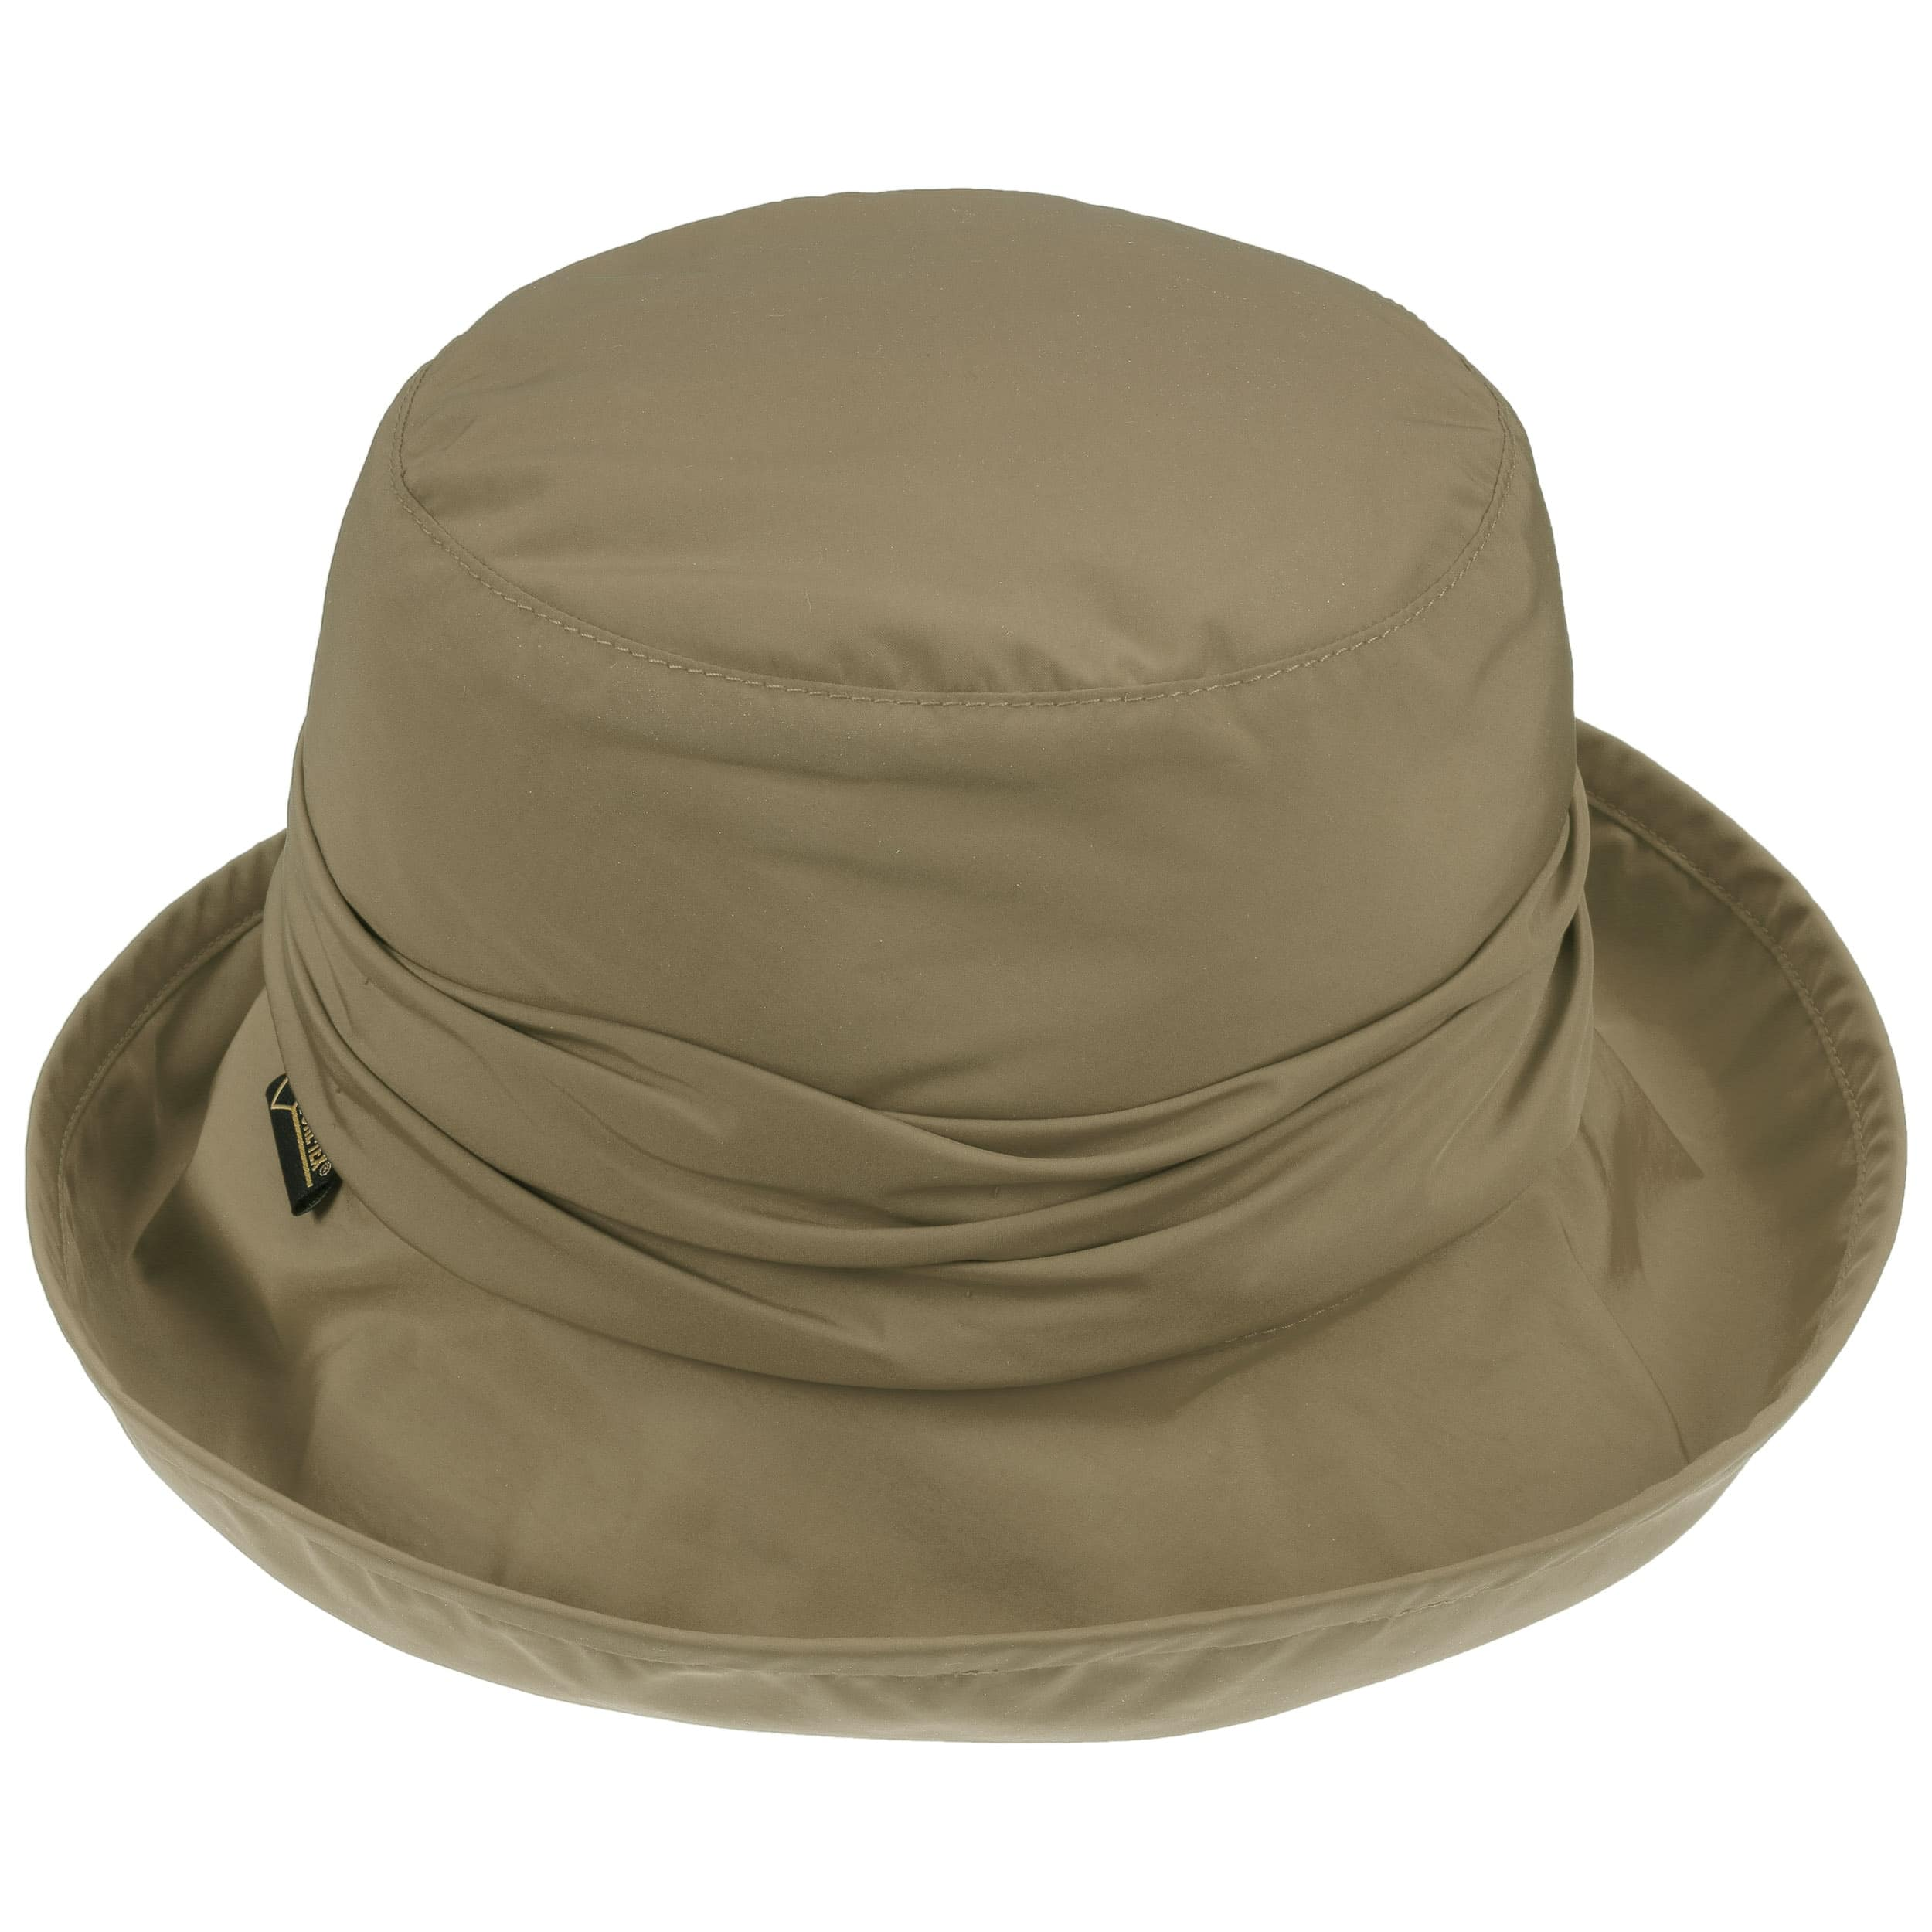 6b5009dc700 ... Gore-Tex Lined Rain Hat by Seeberger - light olive 2 ...